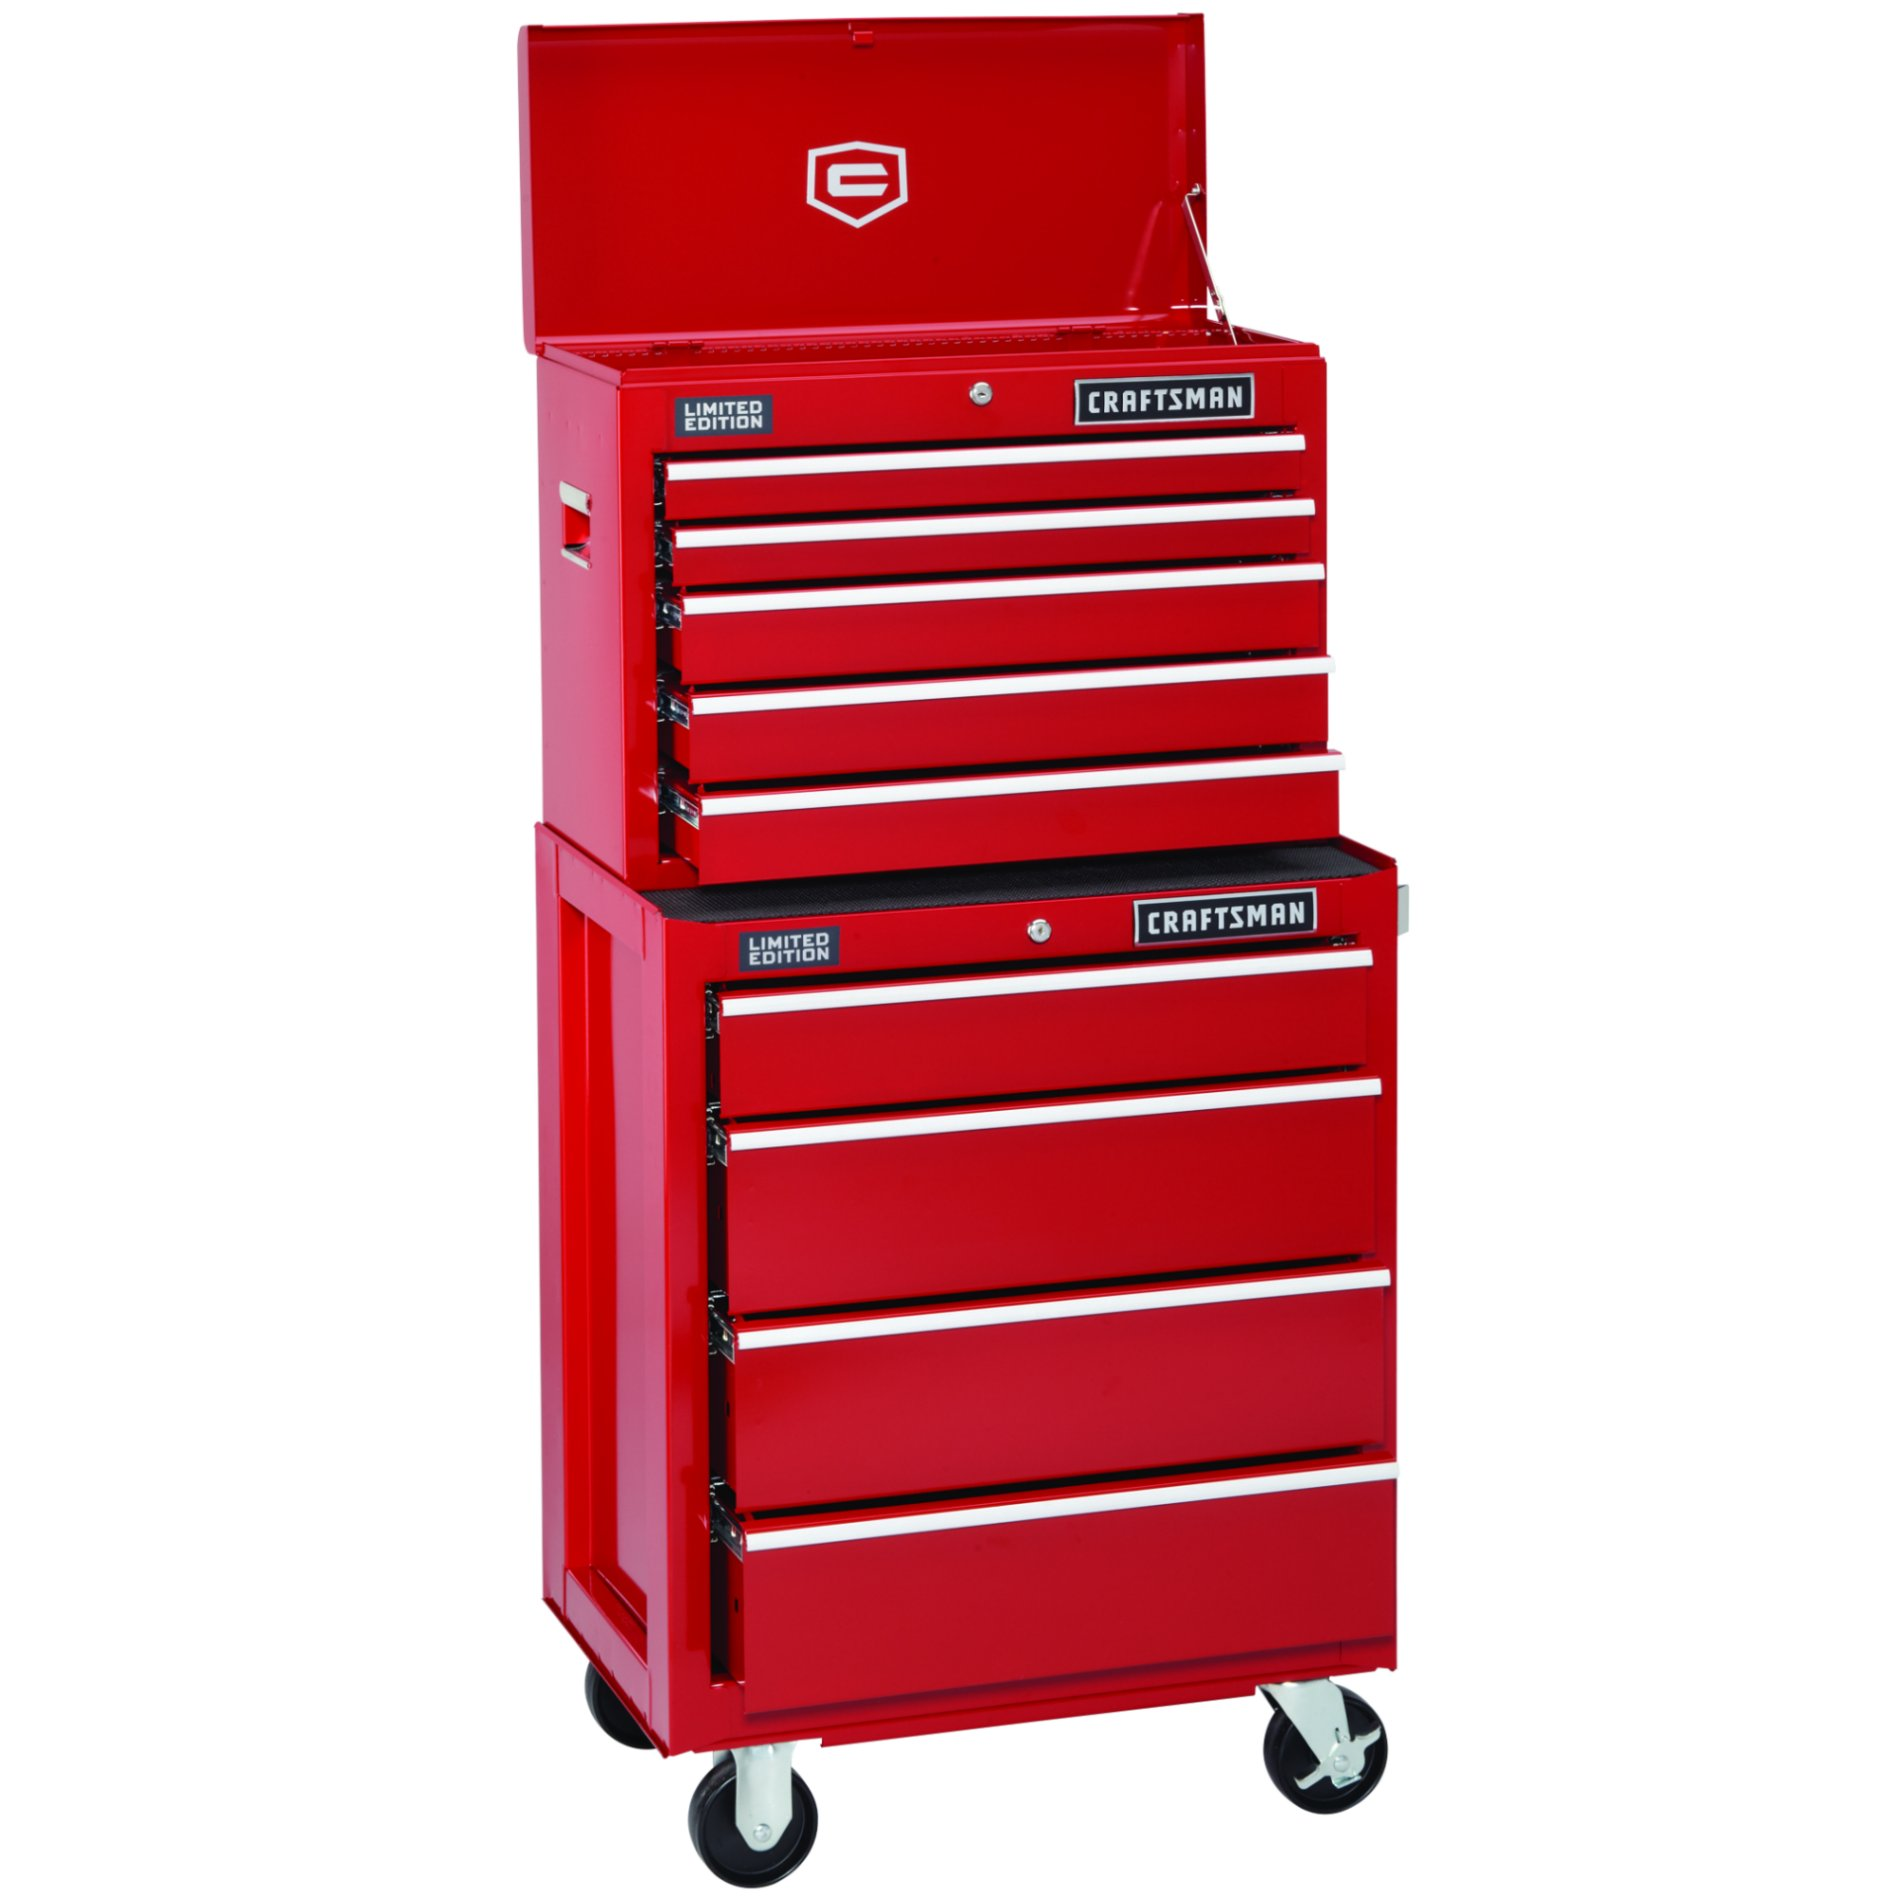 Craftsman 5-Drawer Red Ball-Bearing GRIPLATCH® Top Chest - Limited Edition